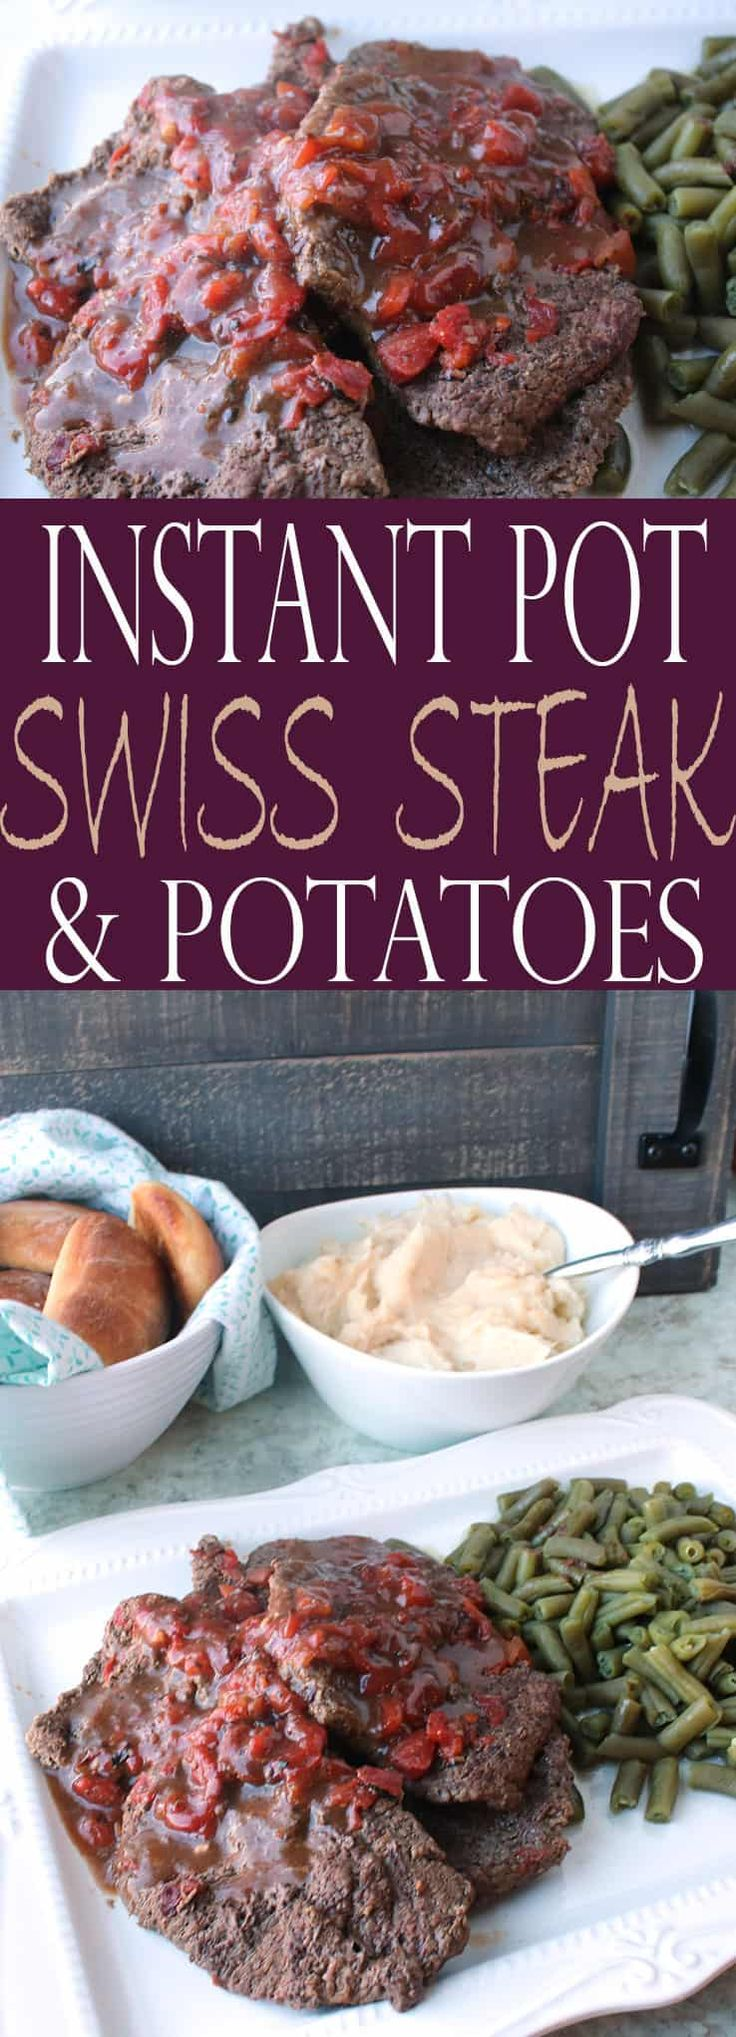 Instant Pot Swiss Steak and Potatoes recipe! It's an easy Instant Pot recipe that's ready in no time at all